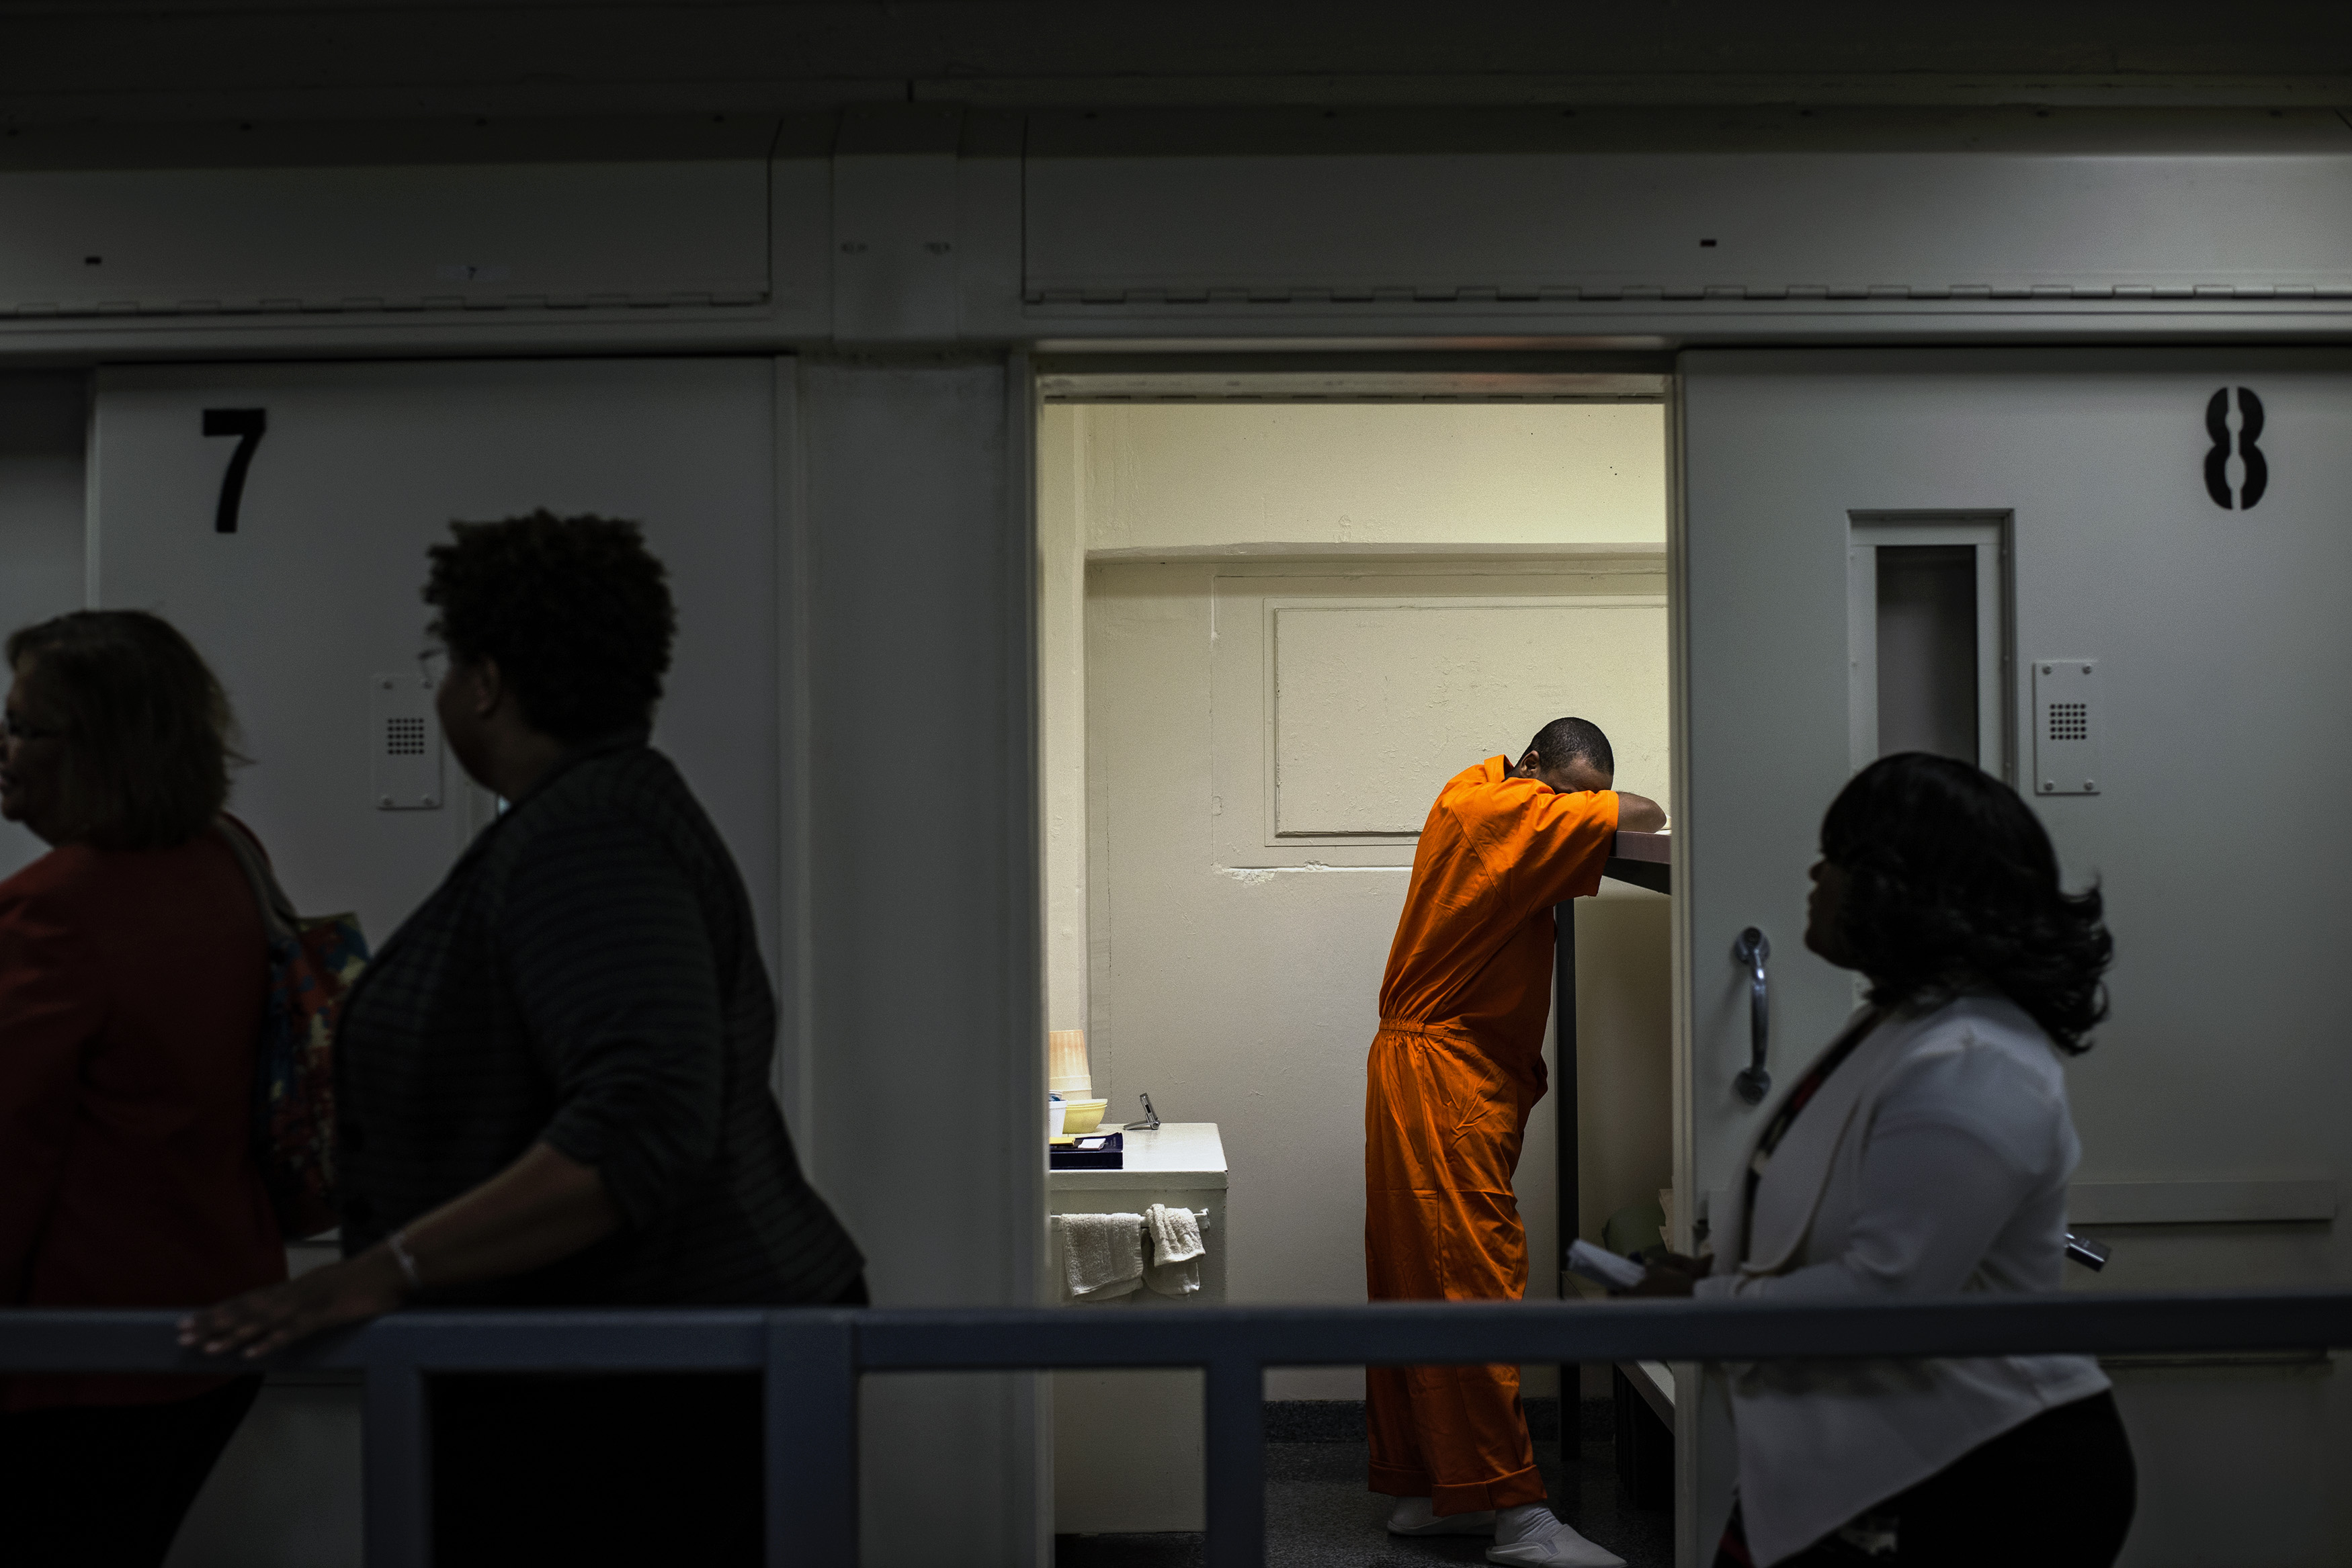 Members of D.C. Mayor Muriel Bowser's entourage walk past an inmate's cell as she tours D.C. Central Jail on September 14, 2015.